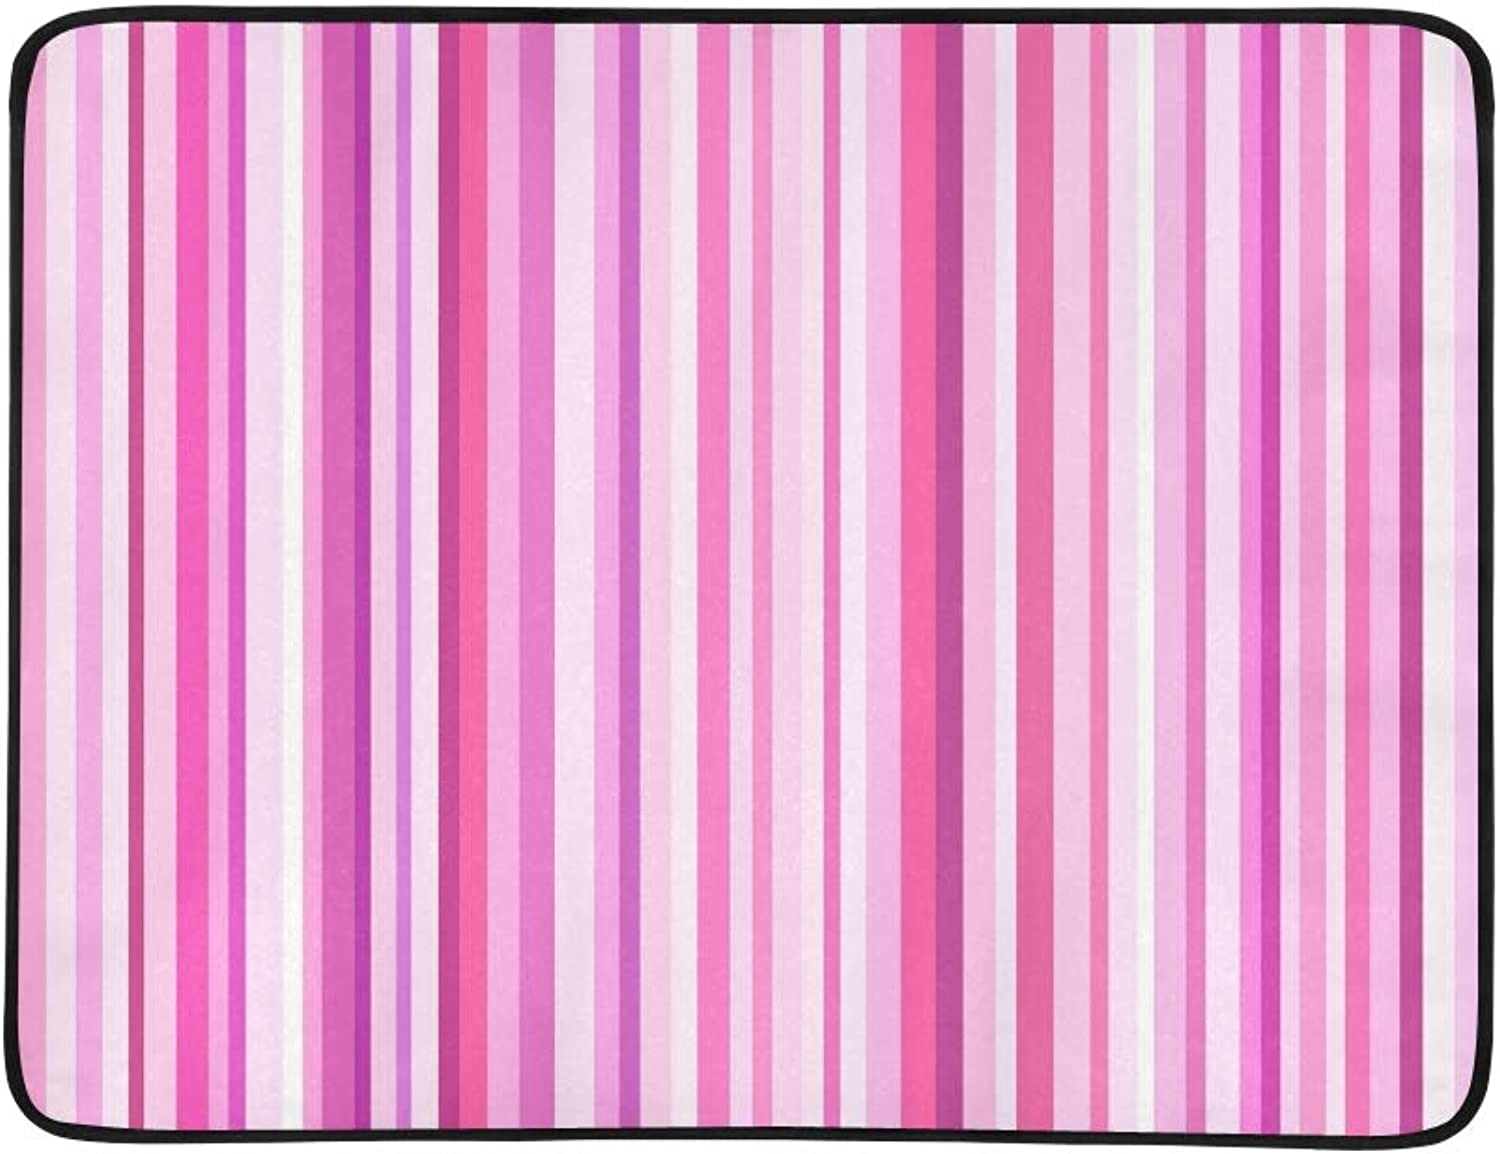 Pink Striped On Cover Fabric Portable and Foldable Blanket Mat 60x78 Inch Handy Mat for Camping Picnic Beach Indoor Outdoor Travel